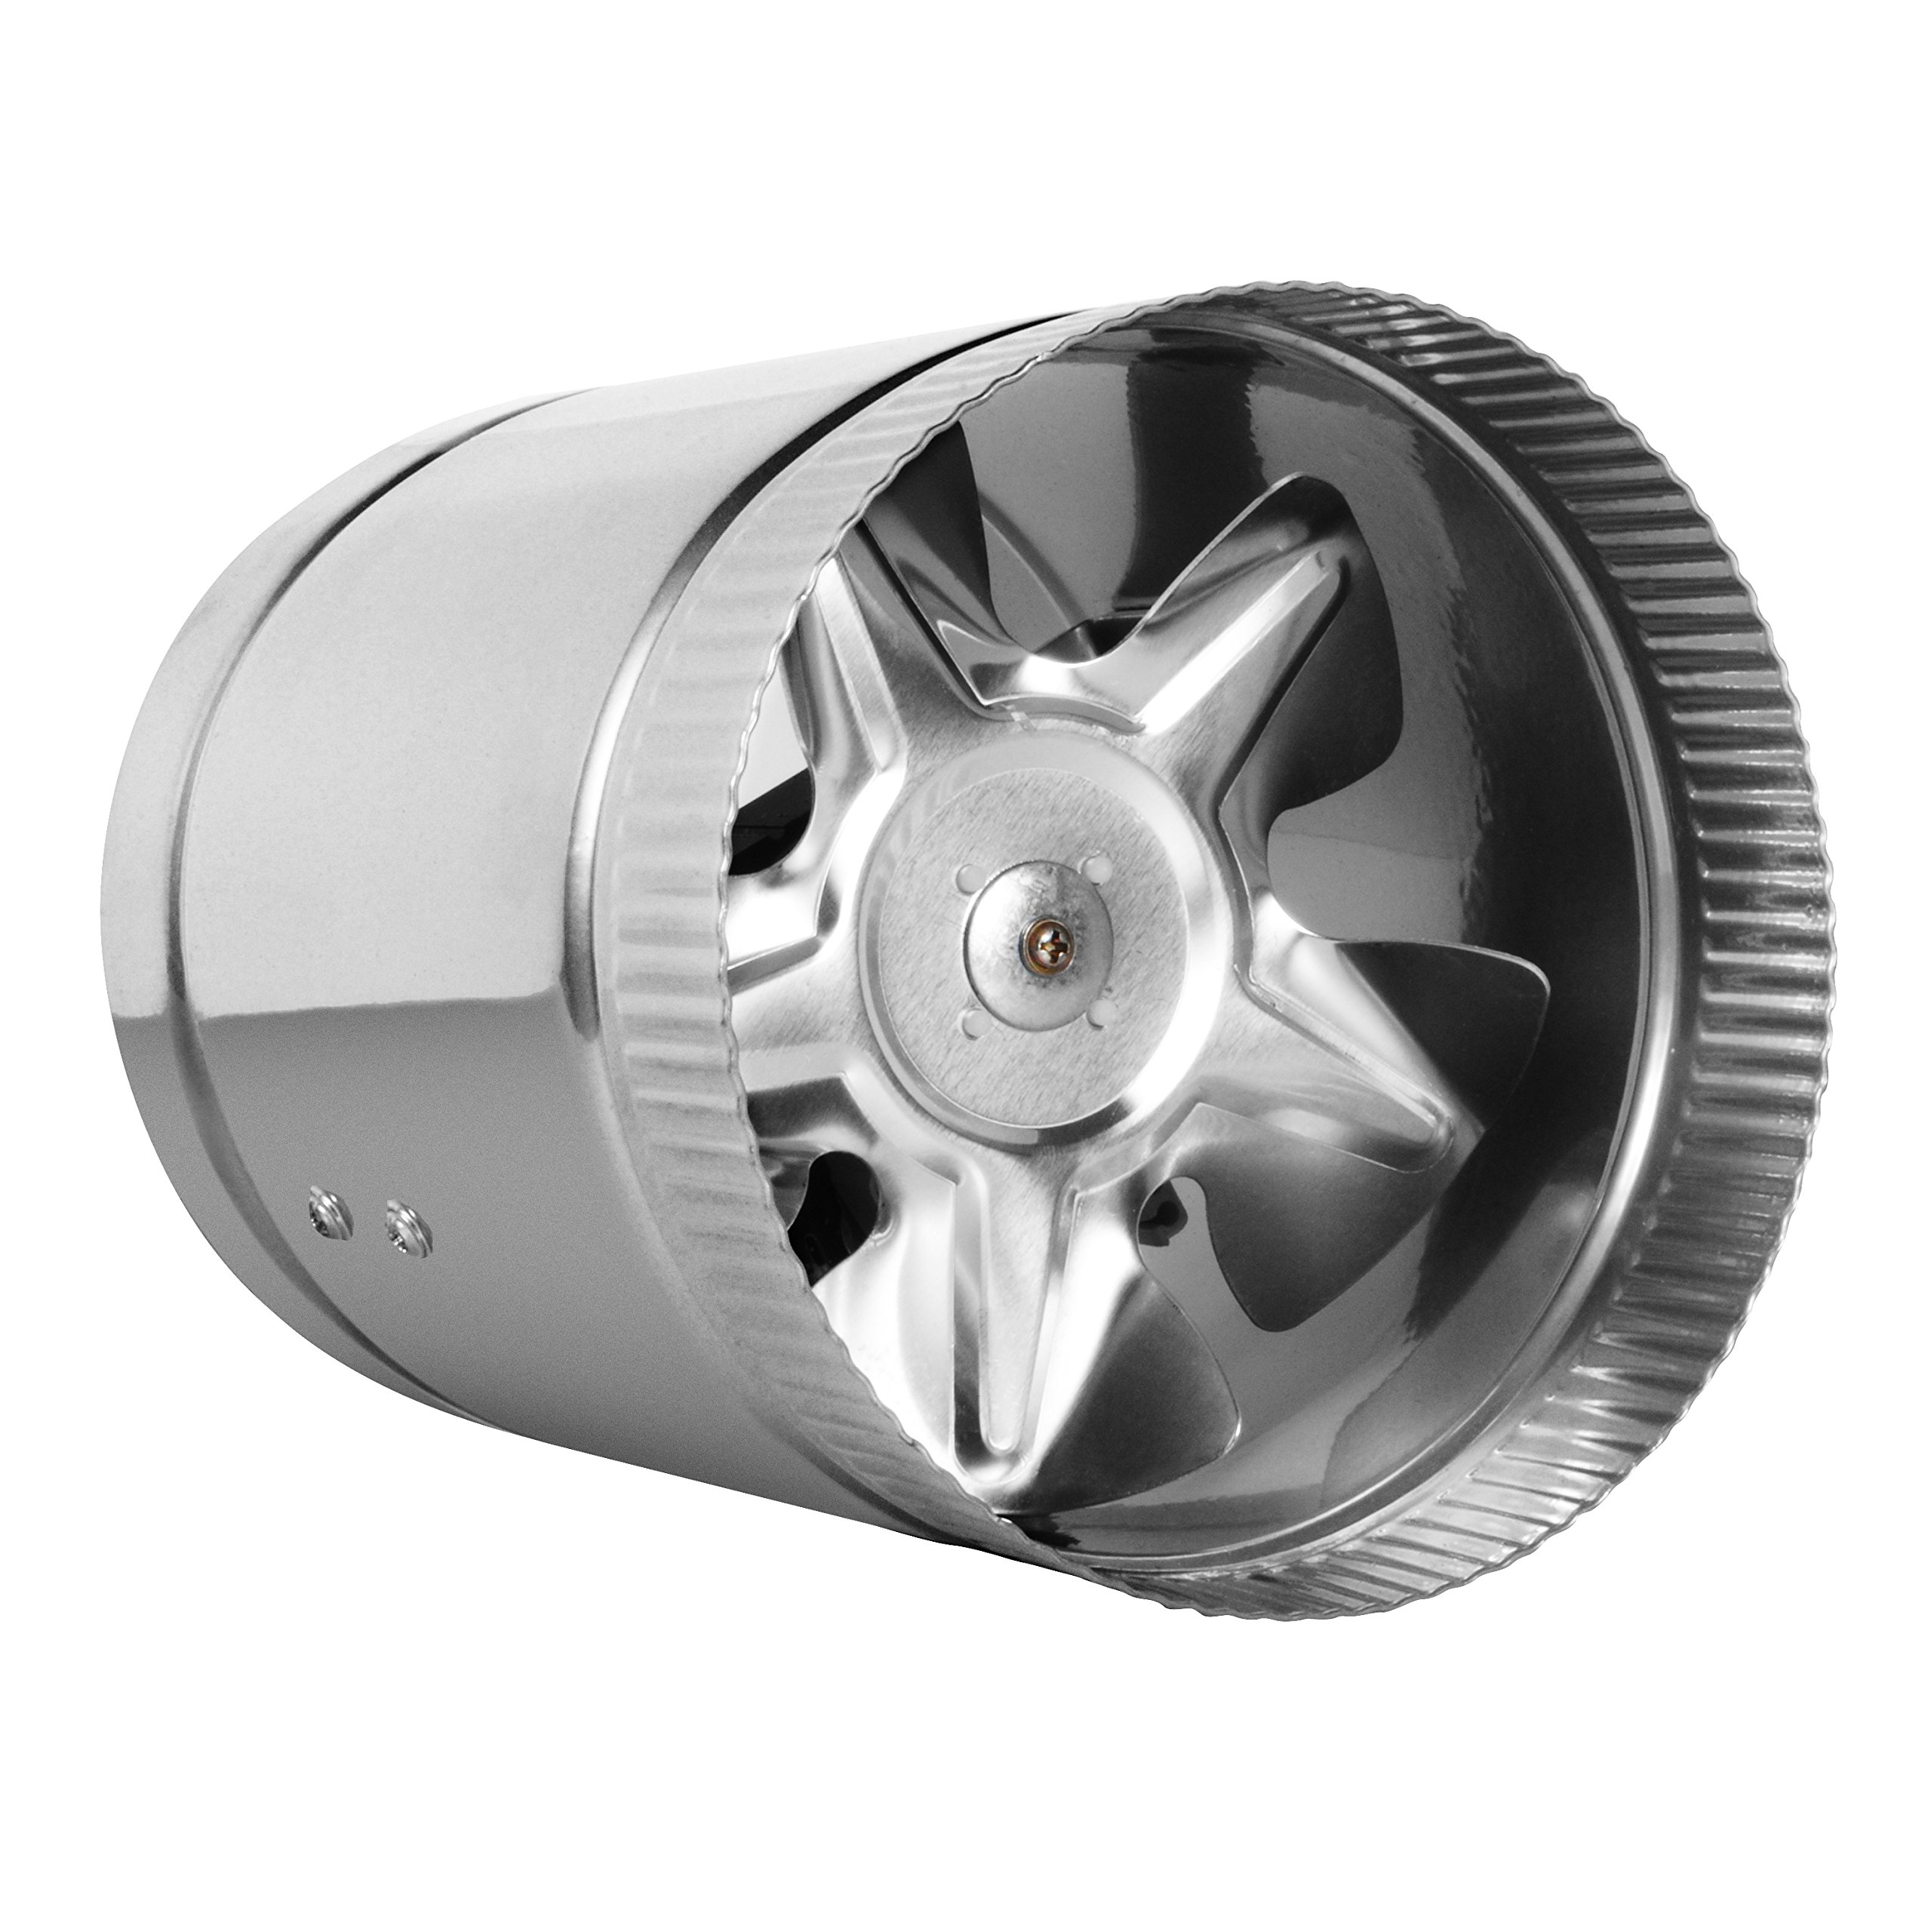 6'' Inline Fan - 240 CFM, Metal Duct Booster Fan, ETL Listed, Pre-Wired 6 FT Grounded Cord - Great for Grow Tent Exhaust and Intake, Register Booster for 6 Inch Ducts